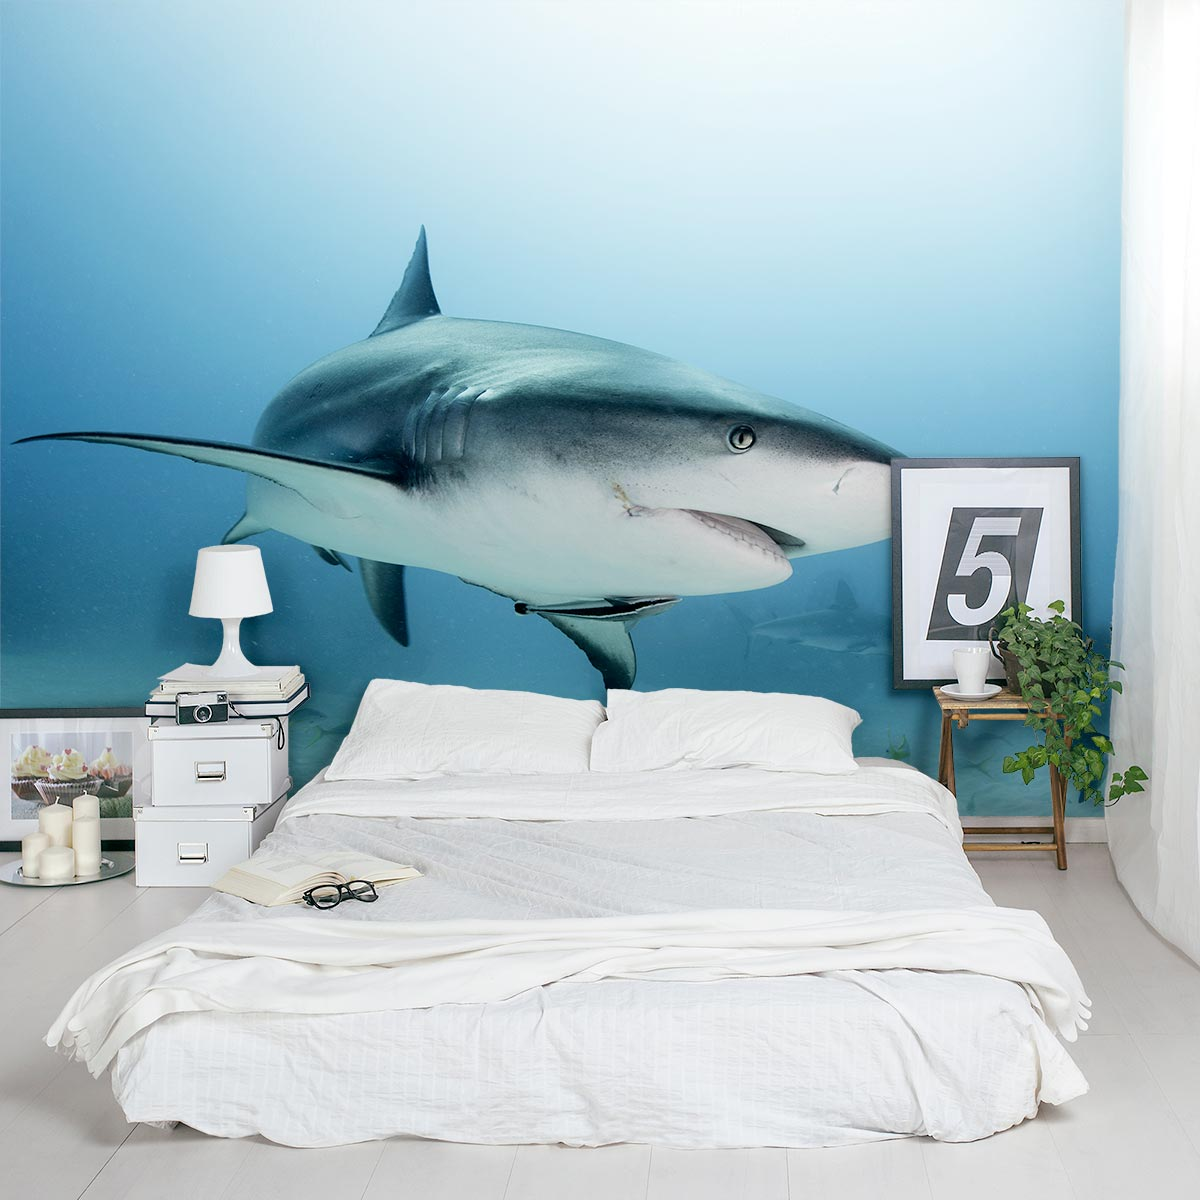 chalkboard for kitchen wall how to make an outdoor caribbean reef shark mural | sticker wallums